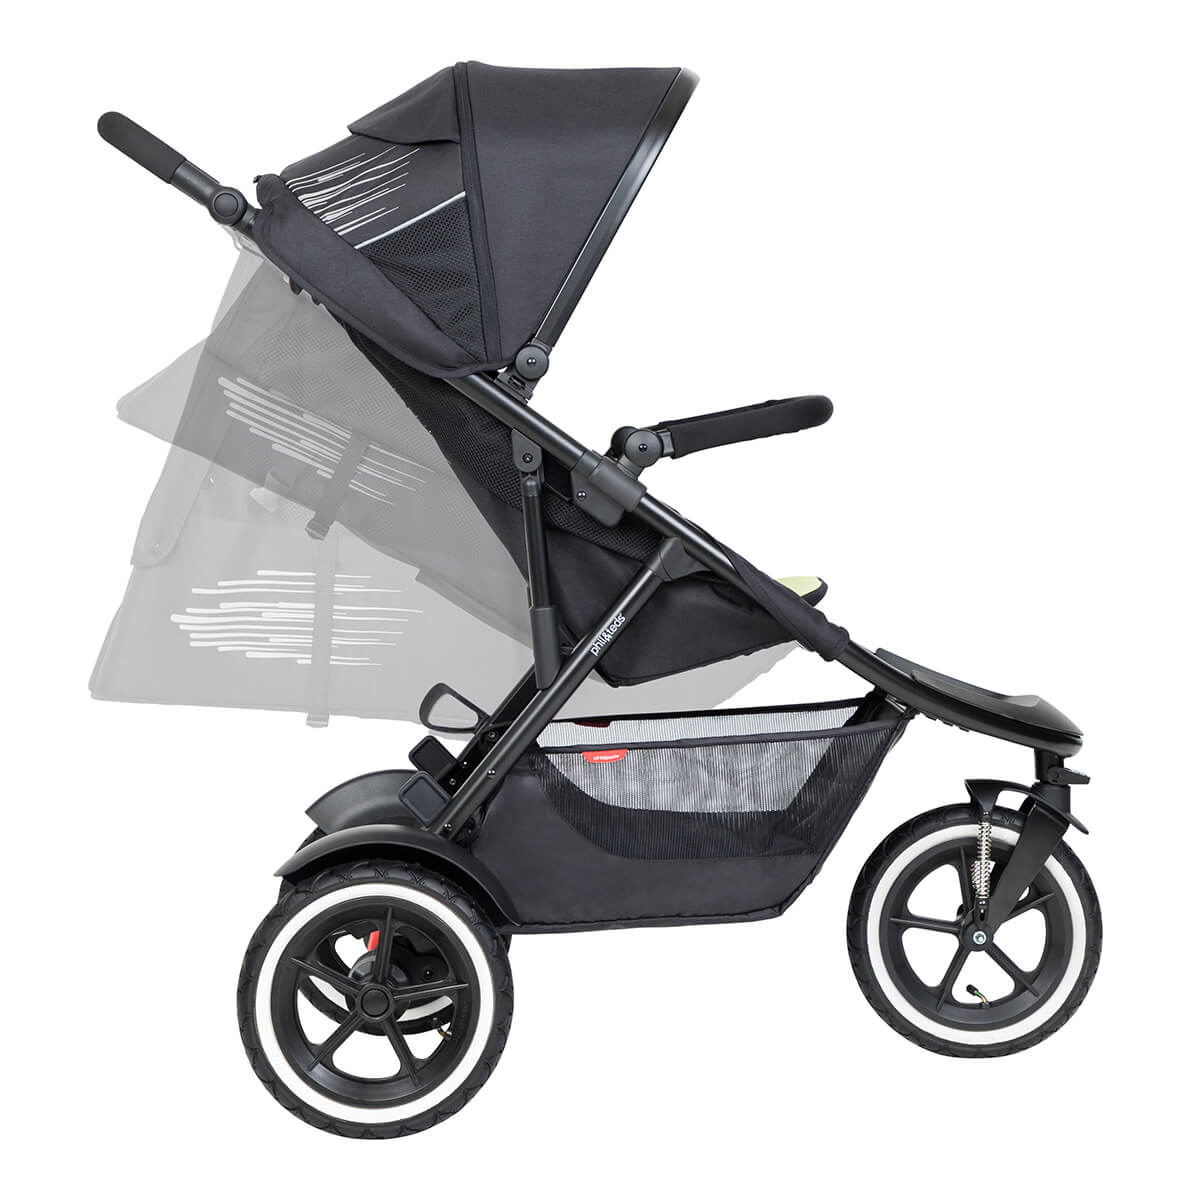 https://cdn.accentuate.io/4509528719448/19272668184664/philteds-sport-poussette-can-recline-in-multiple-angles-including-full-recline-for-newborn-baby-v1626484516398.jpg?1200x1200